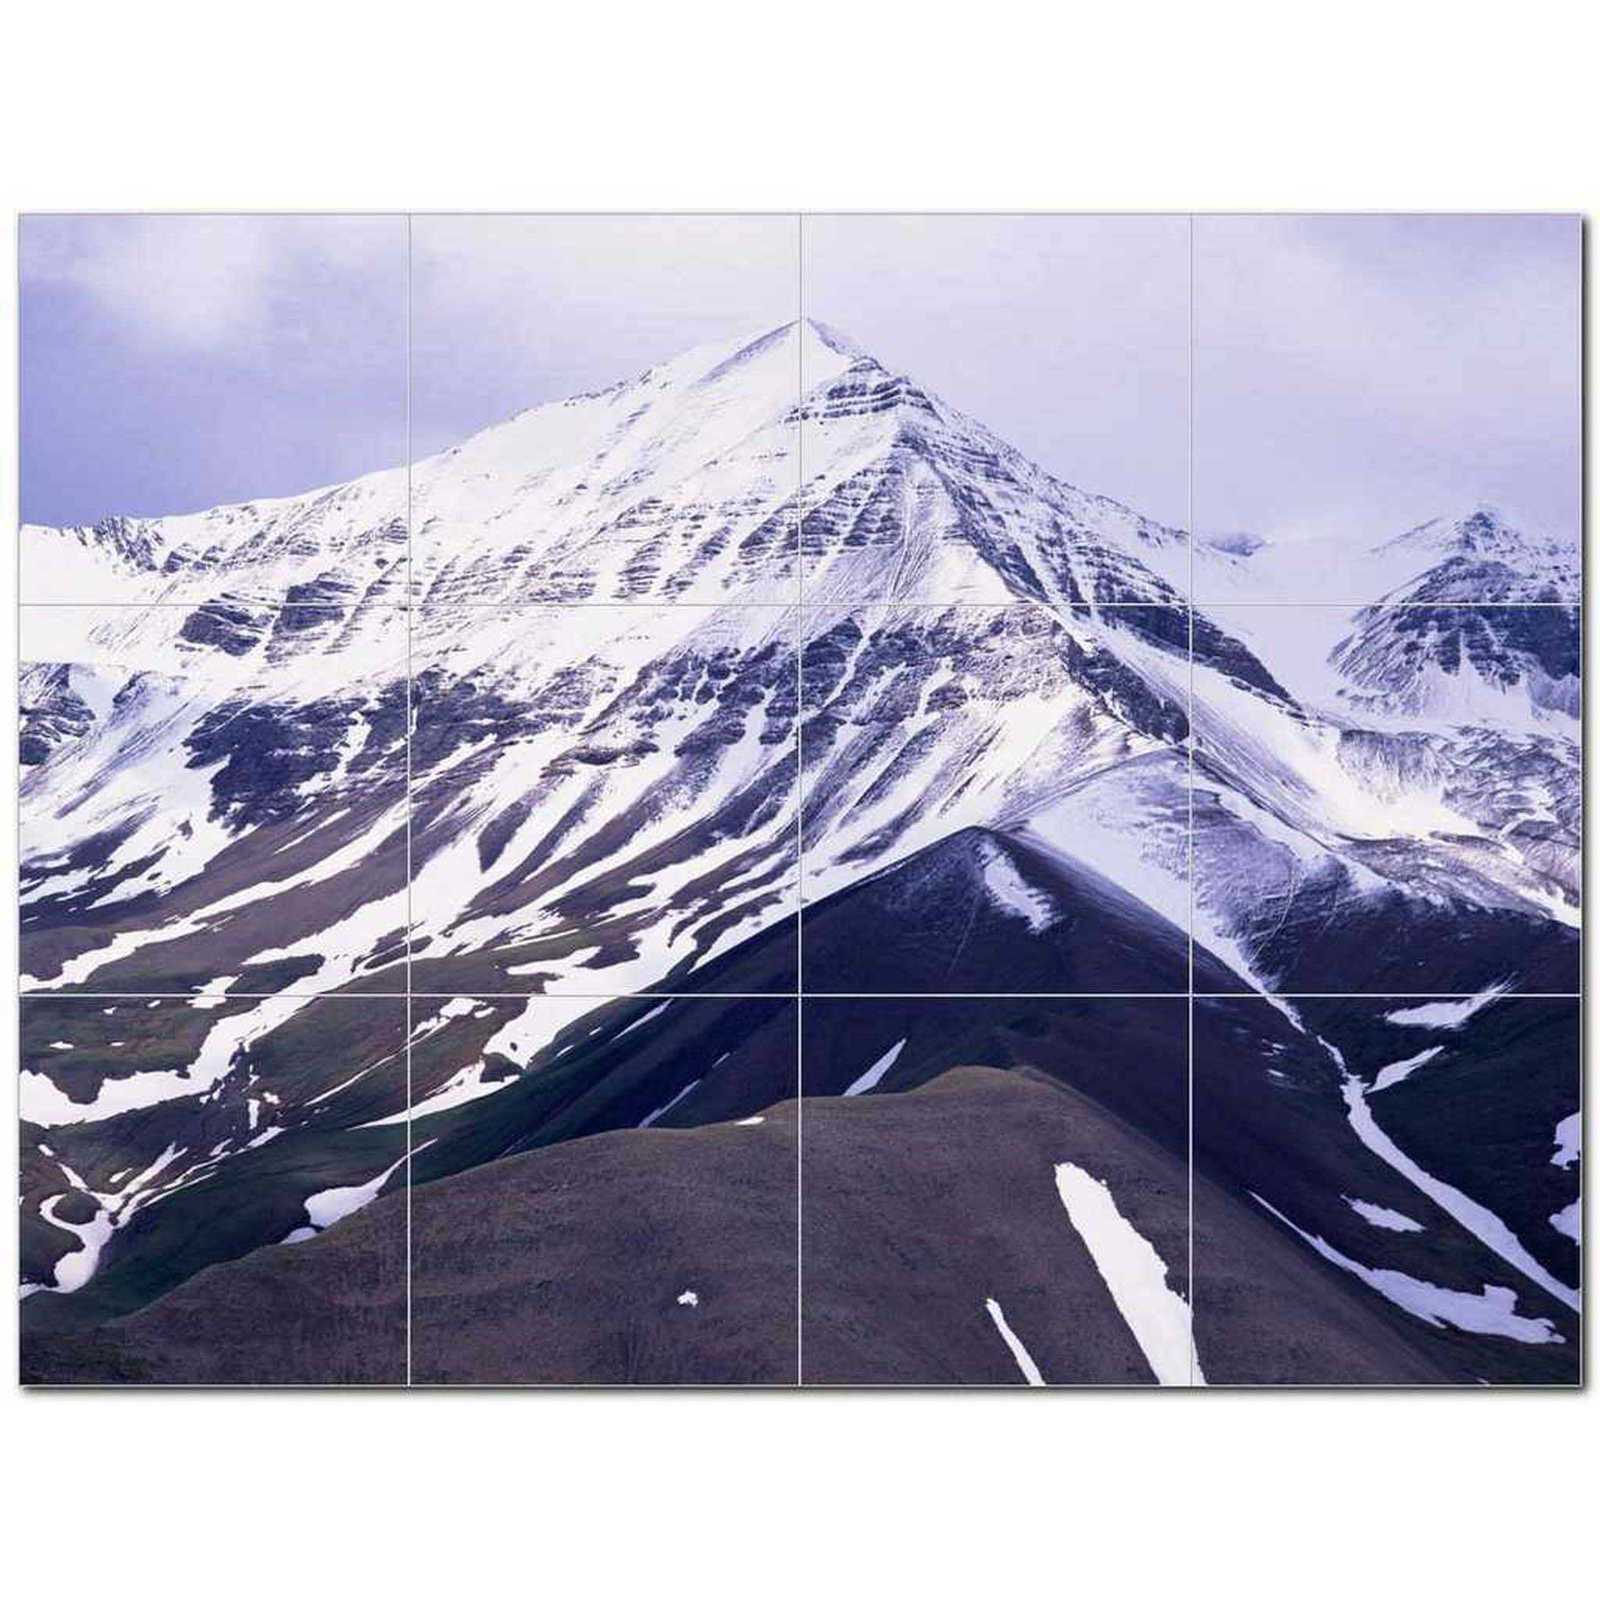 Primary image for Winter Photo Ceramic Tile Mural Kitchen Backsplash Bathroom Shower BAZ406386